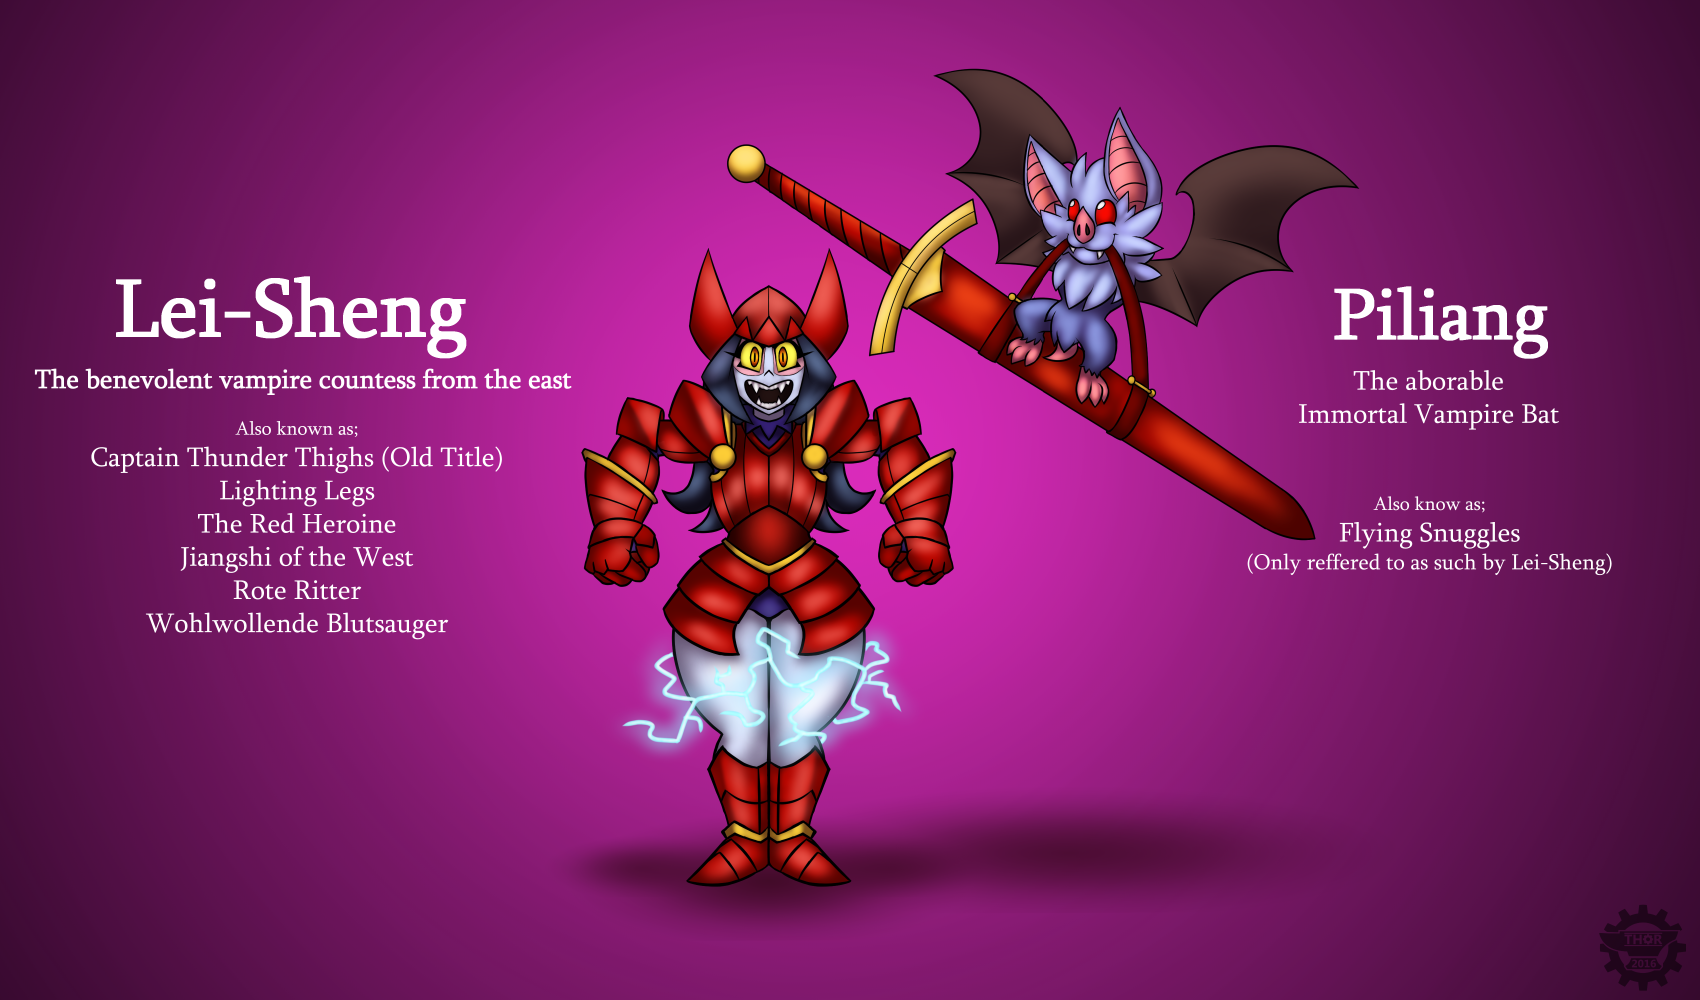 Lei-Sheng the Benevolent